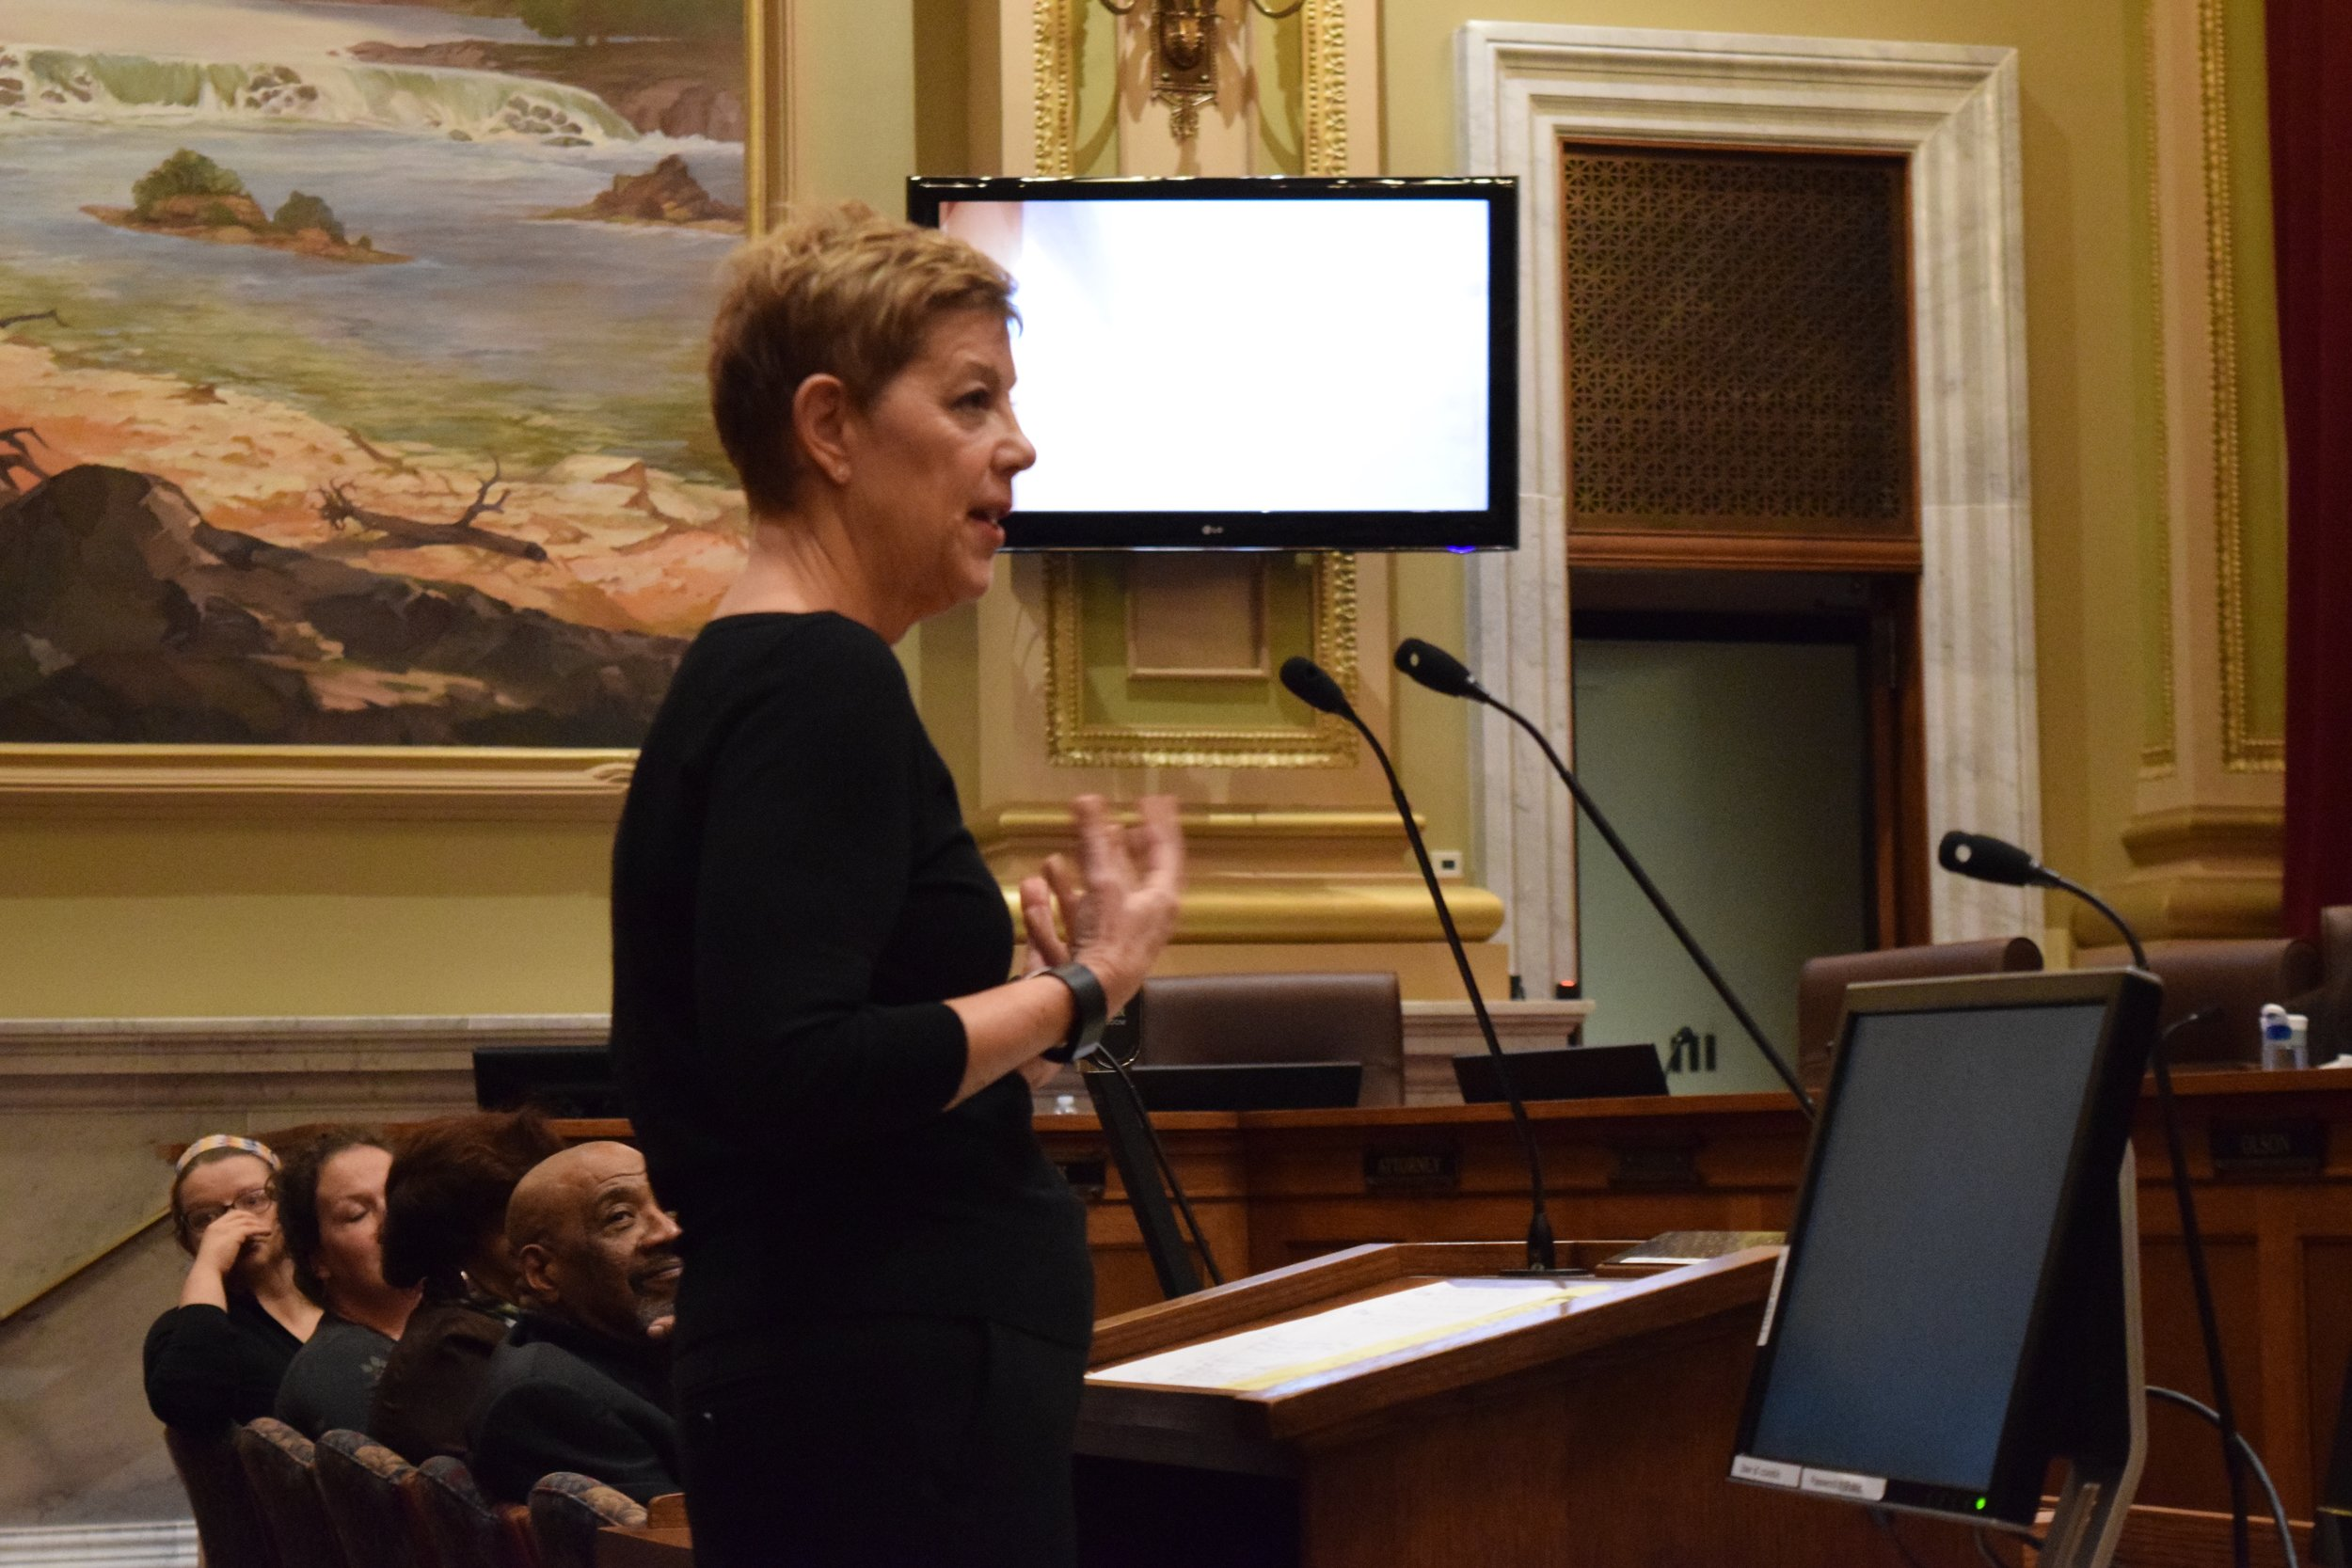 Homewood resident and former City Council President Jackie Cherryhomes addressed the Heritage Preservation Commission on February 28.